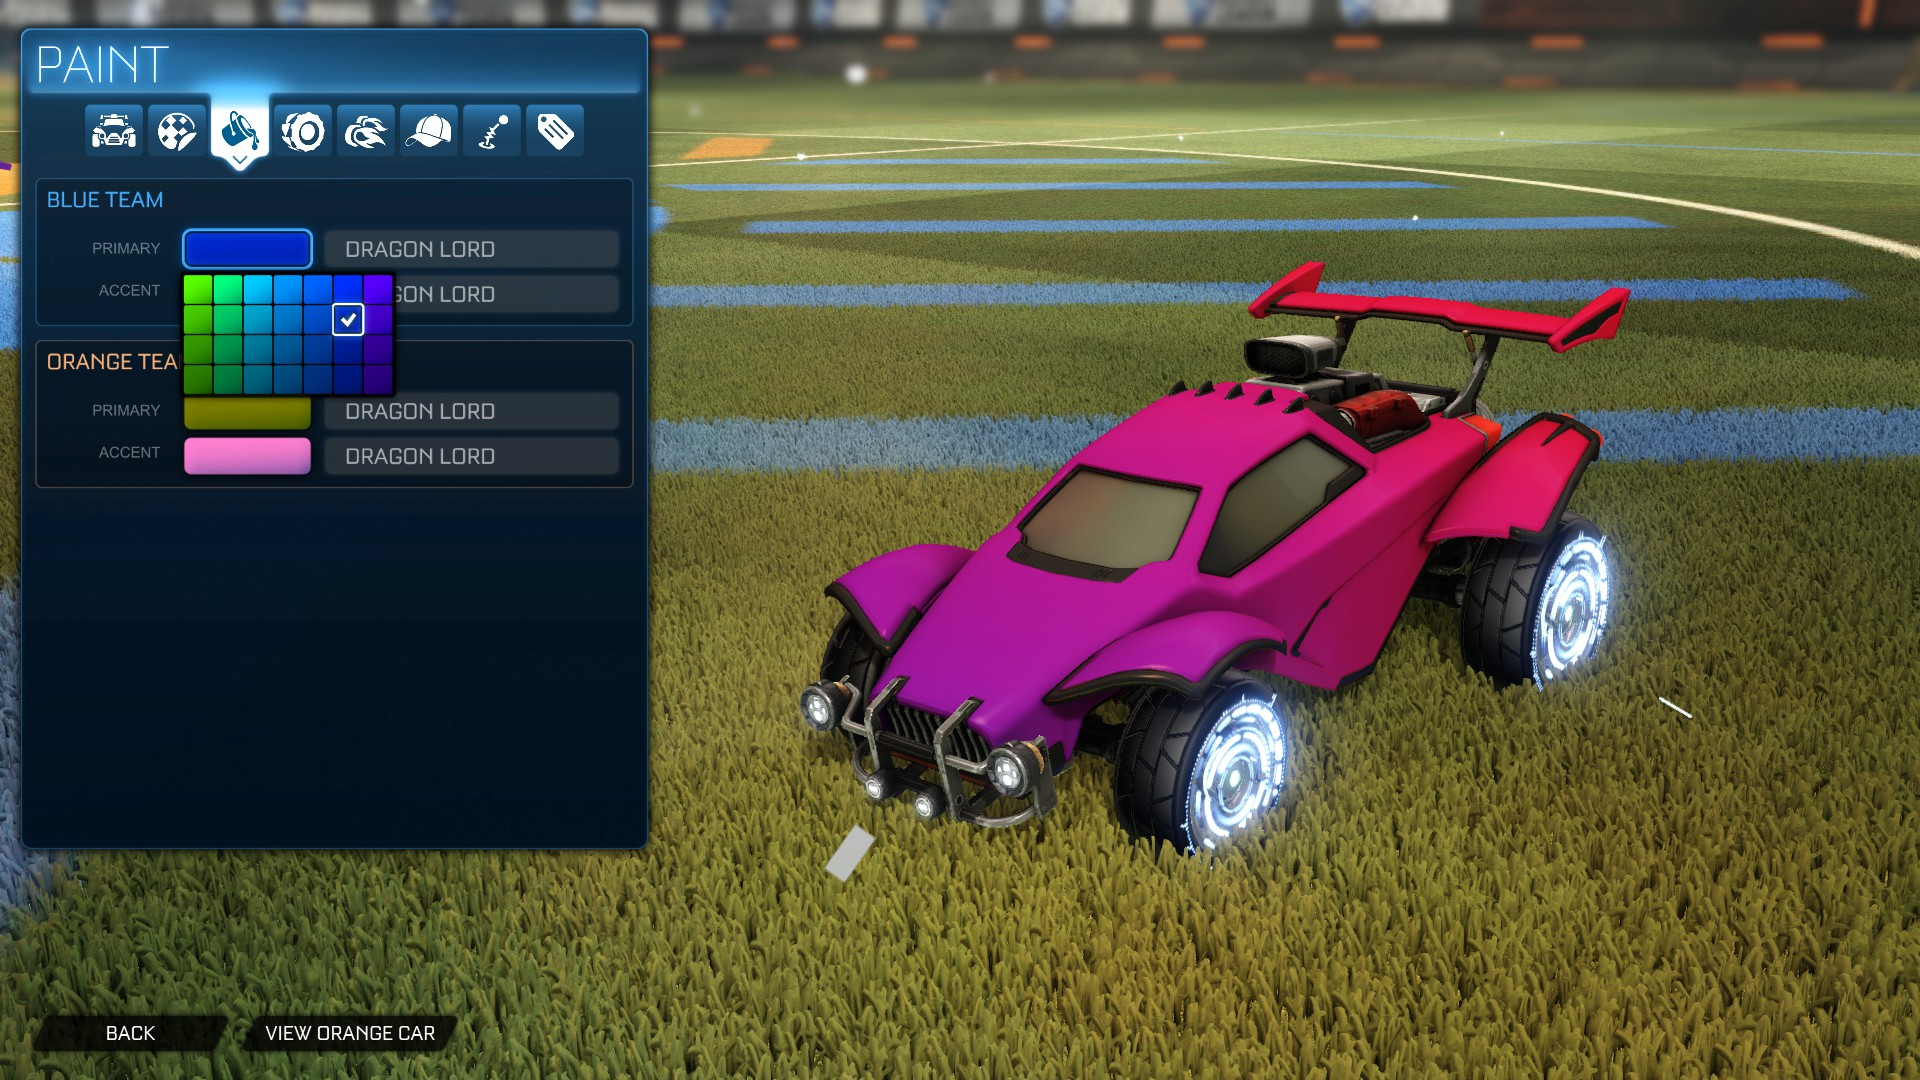 octane fade color decal (repl dragonlord)